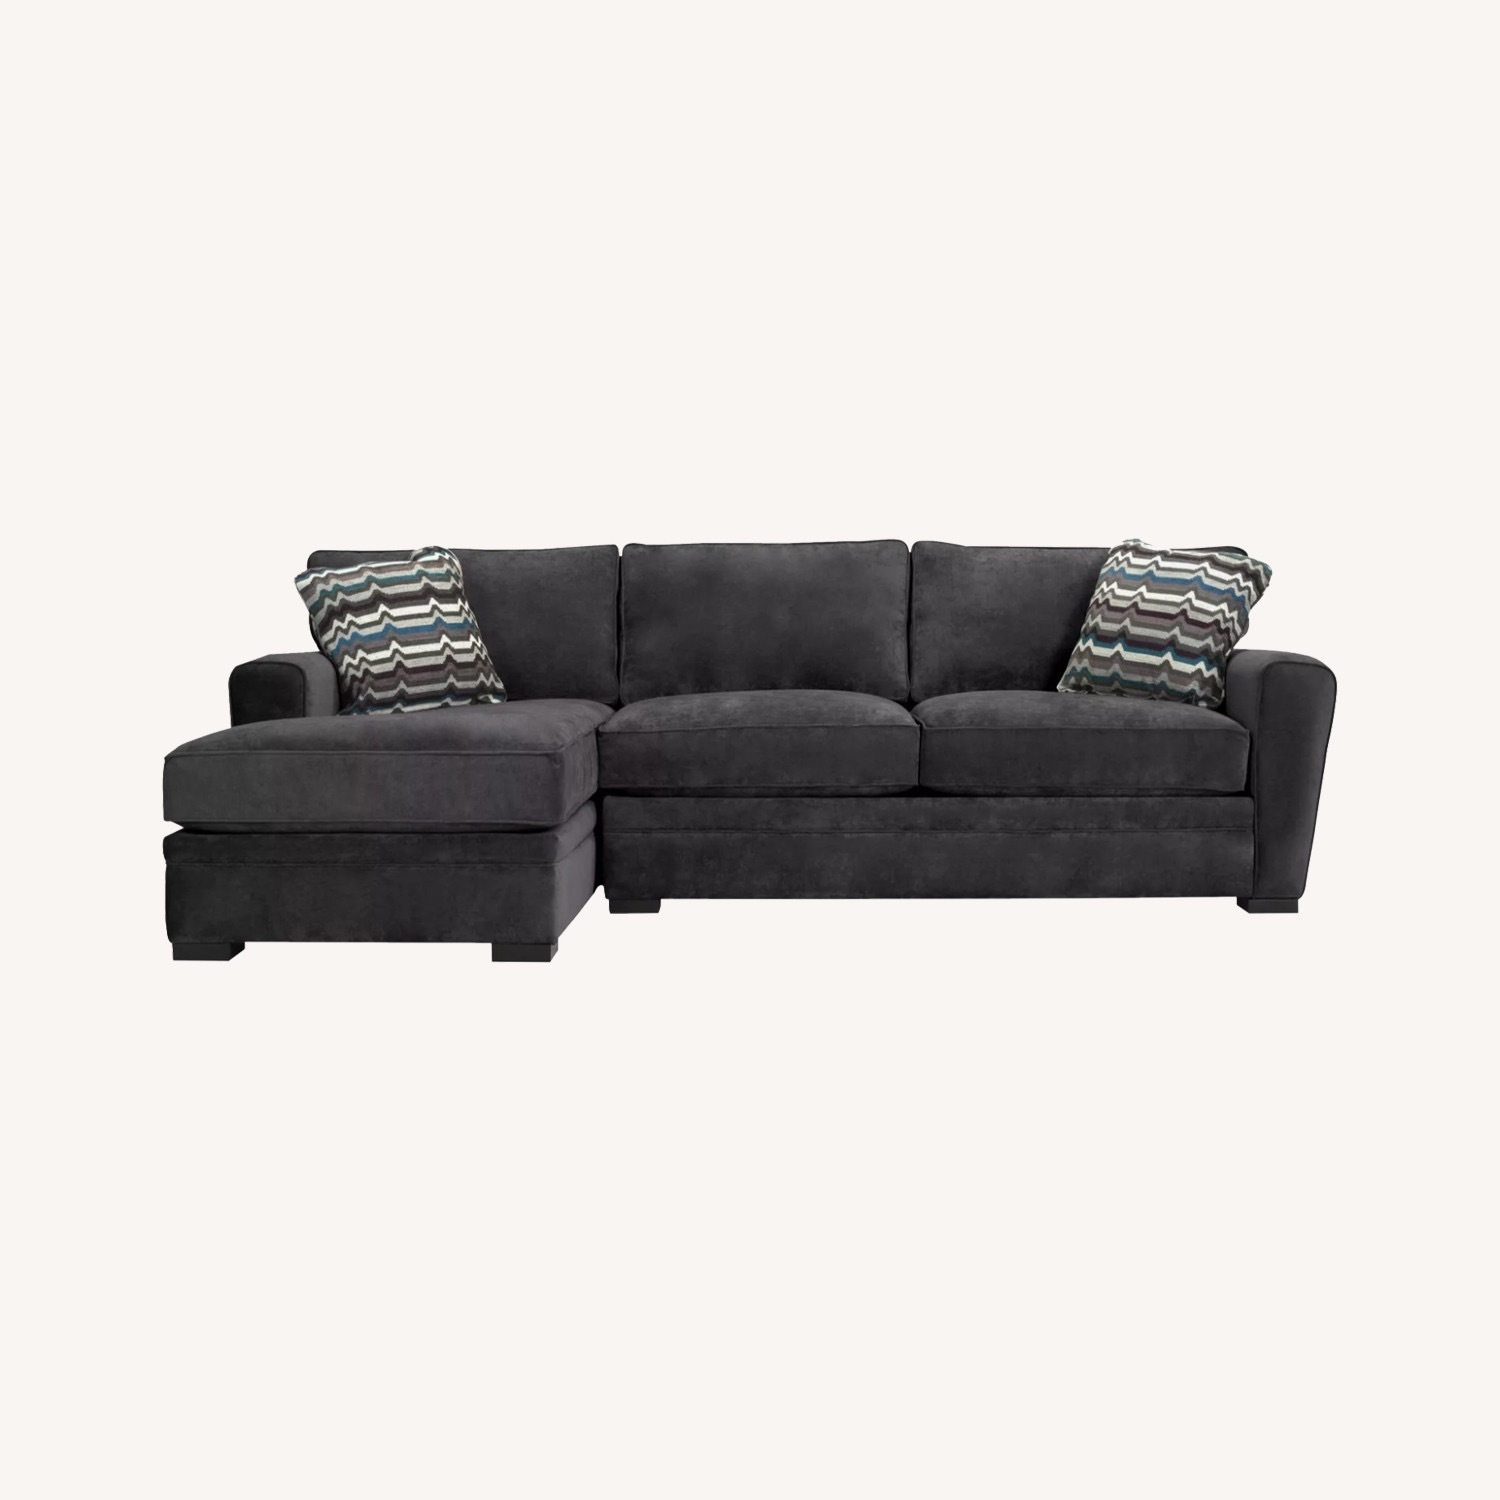 Raymour & Flanigan Dark Gray L Shaped Sectional - image-0